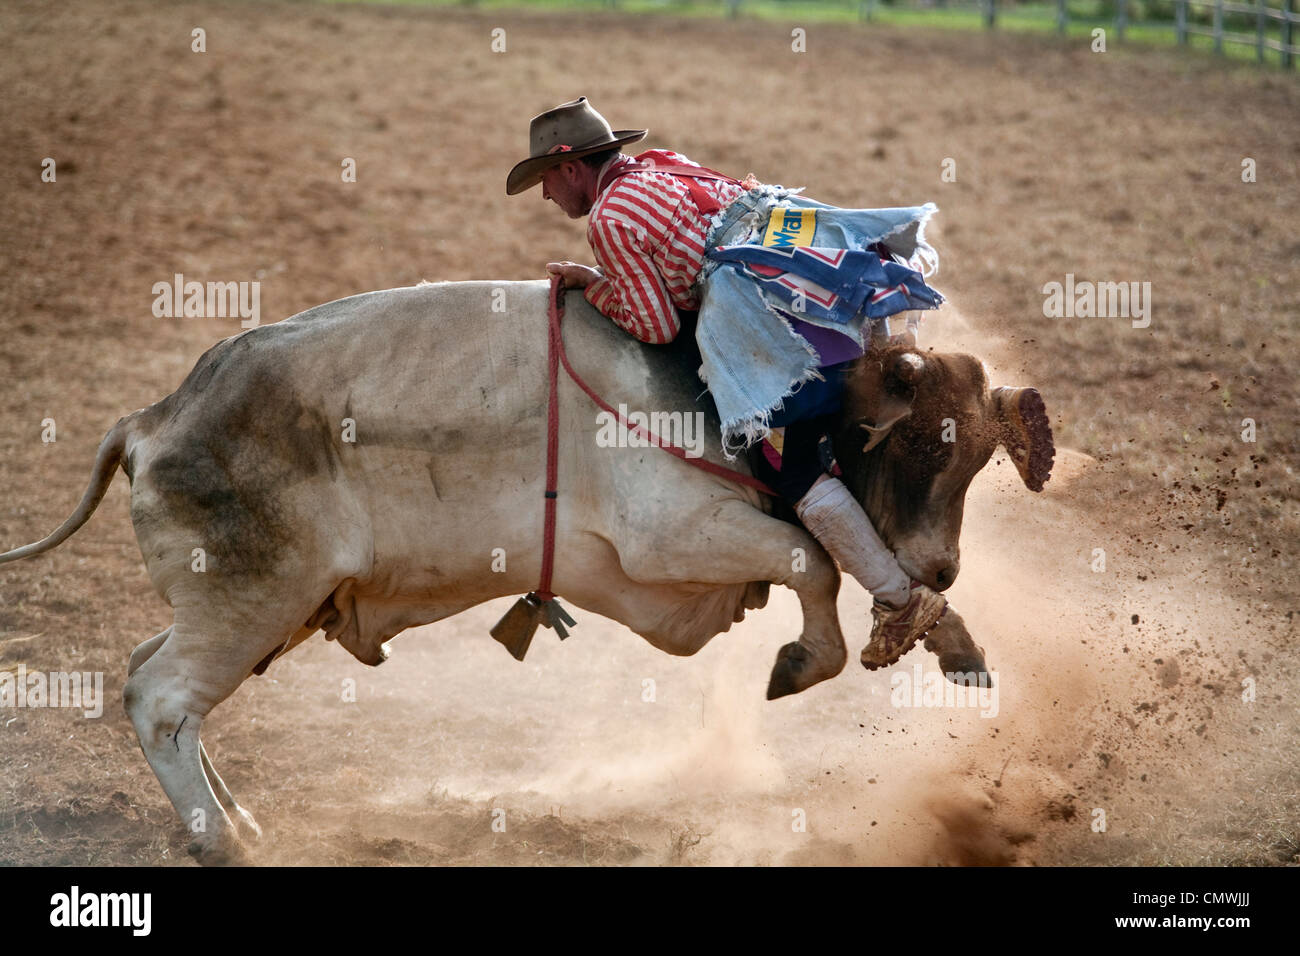 a rodeo clown takes a ride on a bull backwards mt garnet rodeo